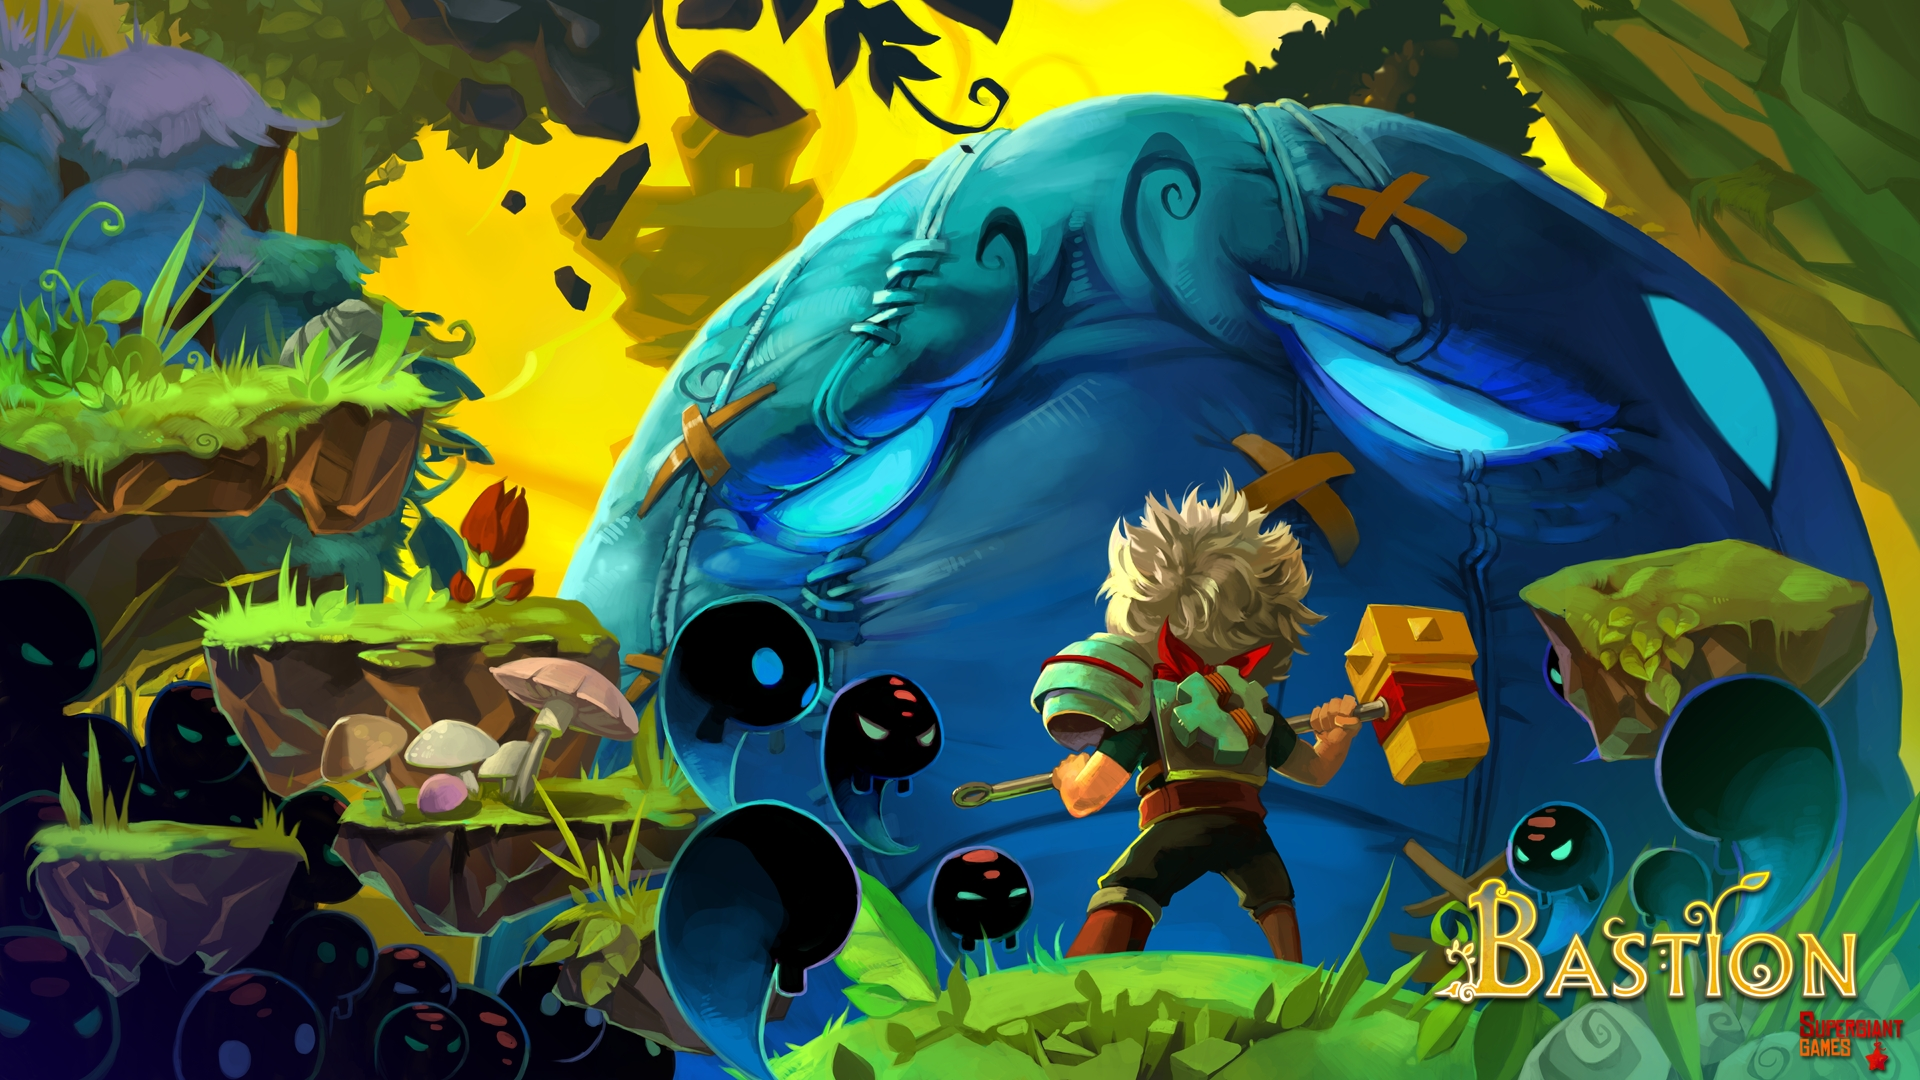 Bastion builds a wall of 1.7 million sales